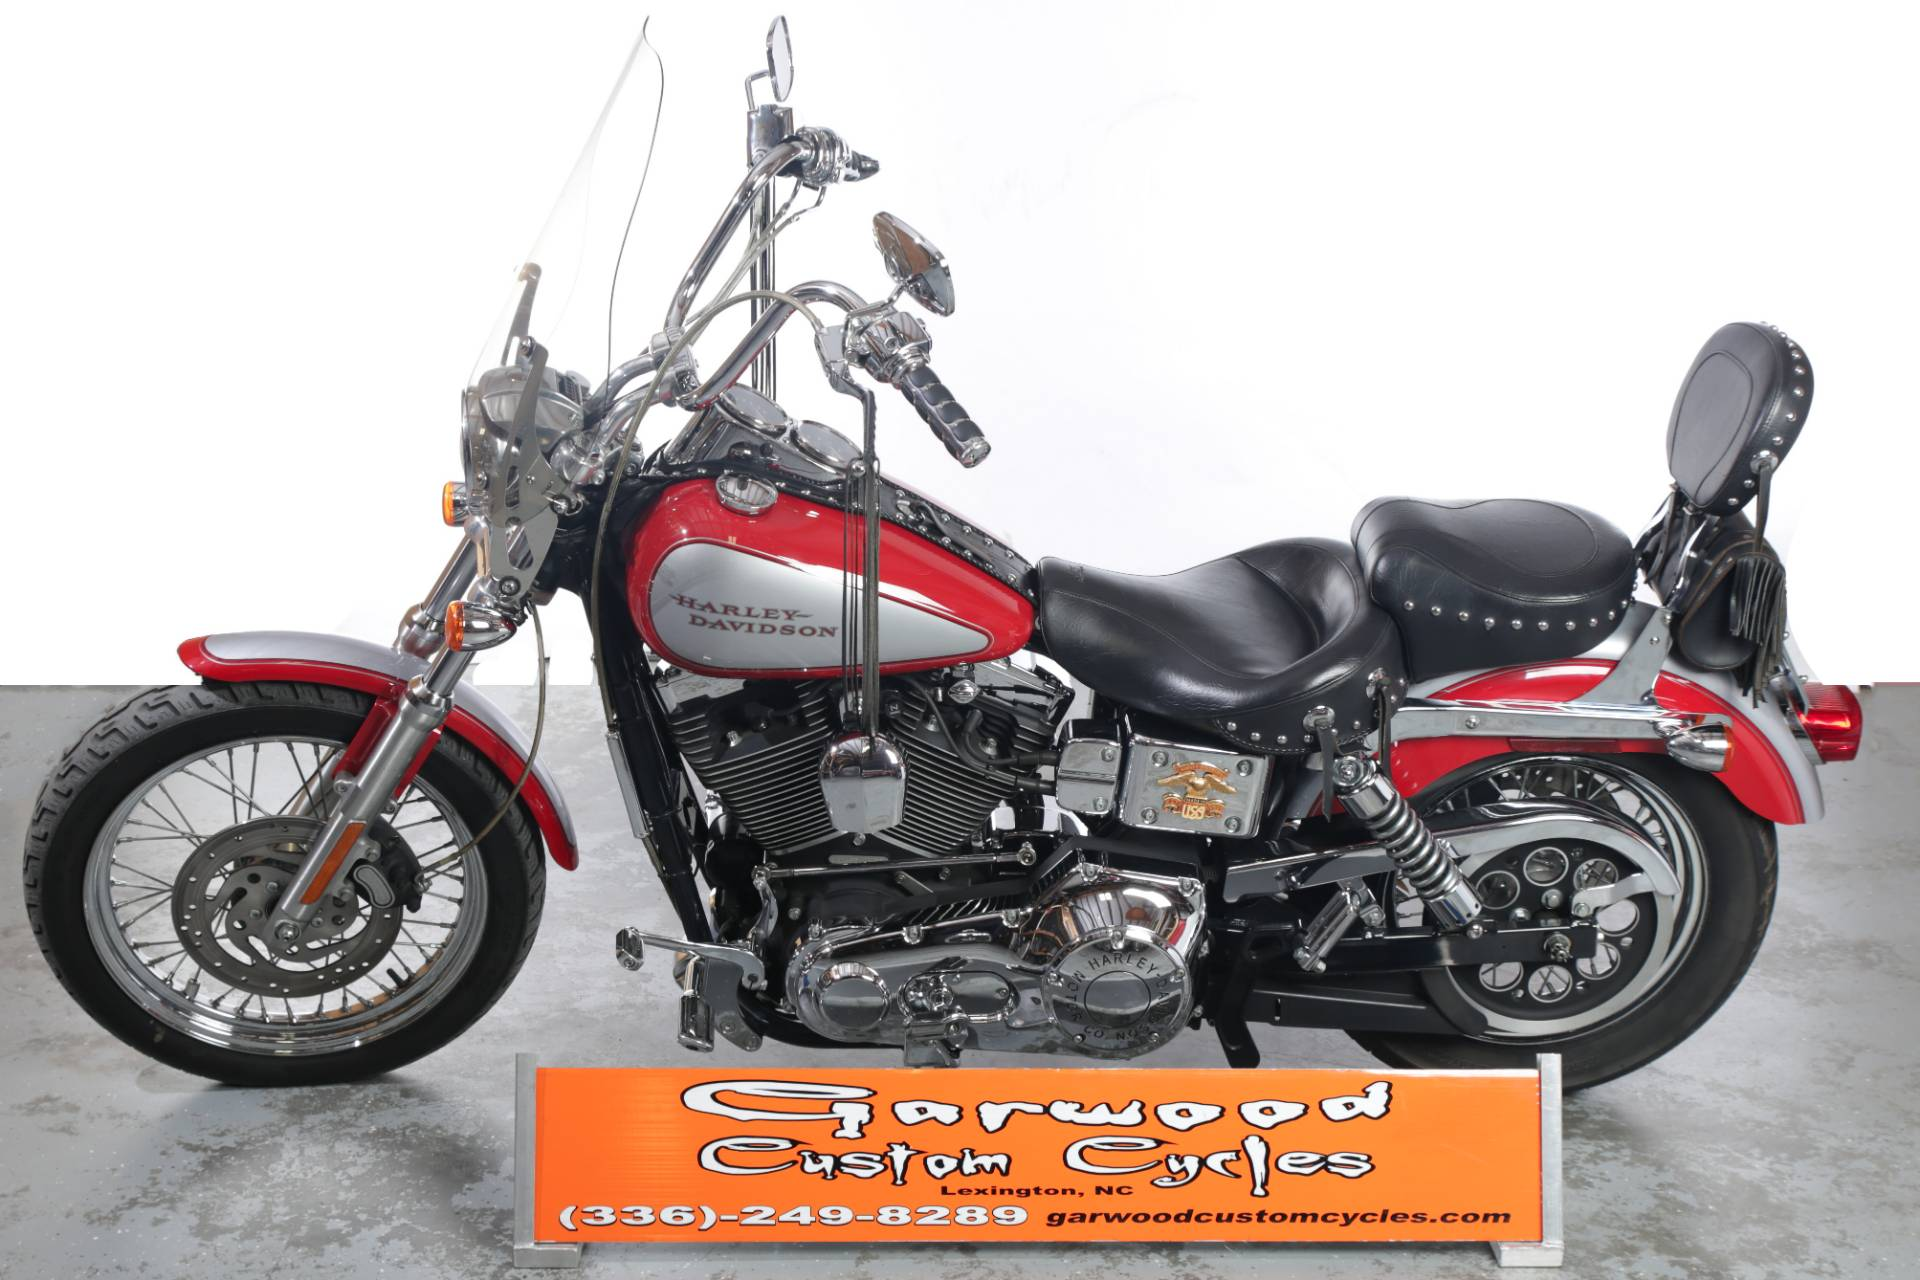 2002 Harley Davidson FXDL in Lexington, North Carolina